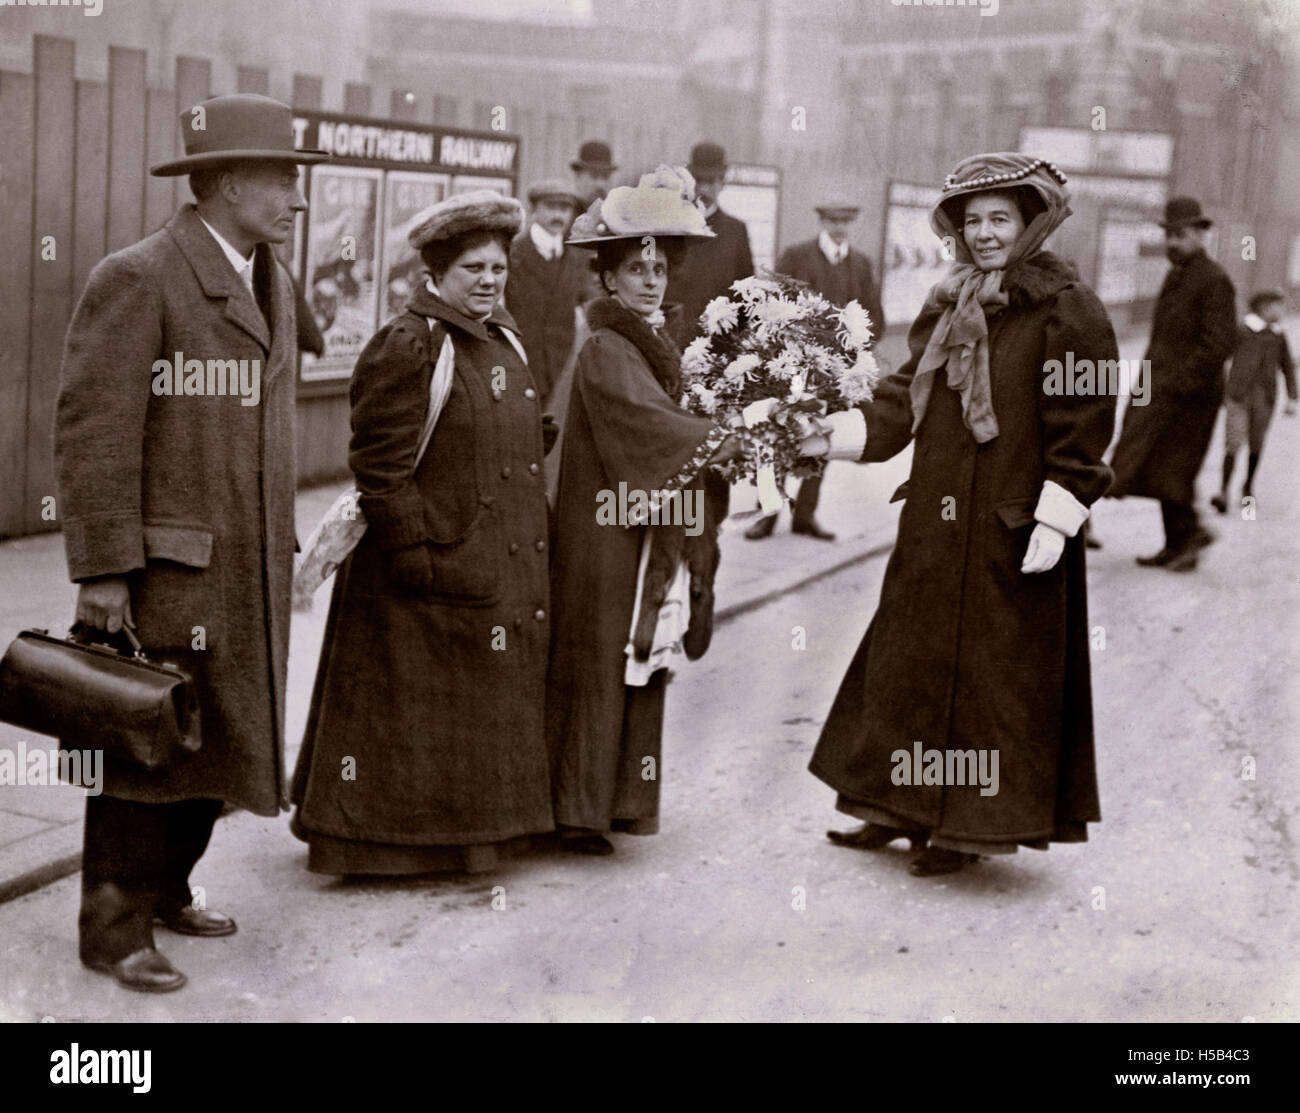 Emmeline Pethick Lawrence, Jennie Baines, Flora Drummond and Frederick Pethick Lawrence, c. 1906-1910. Stock Photo